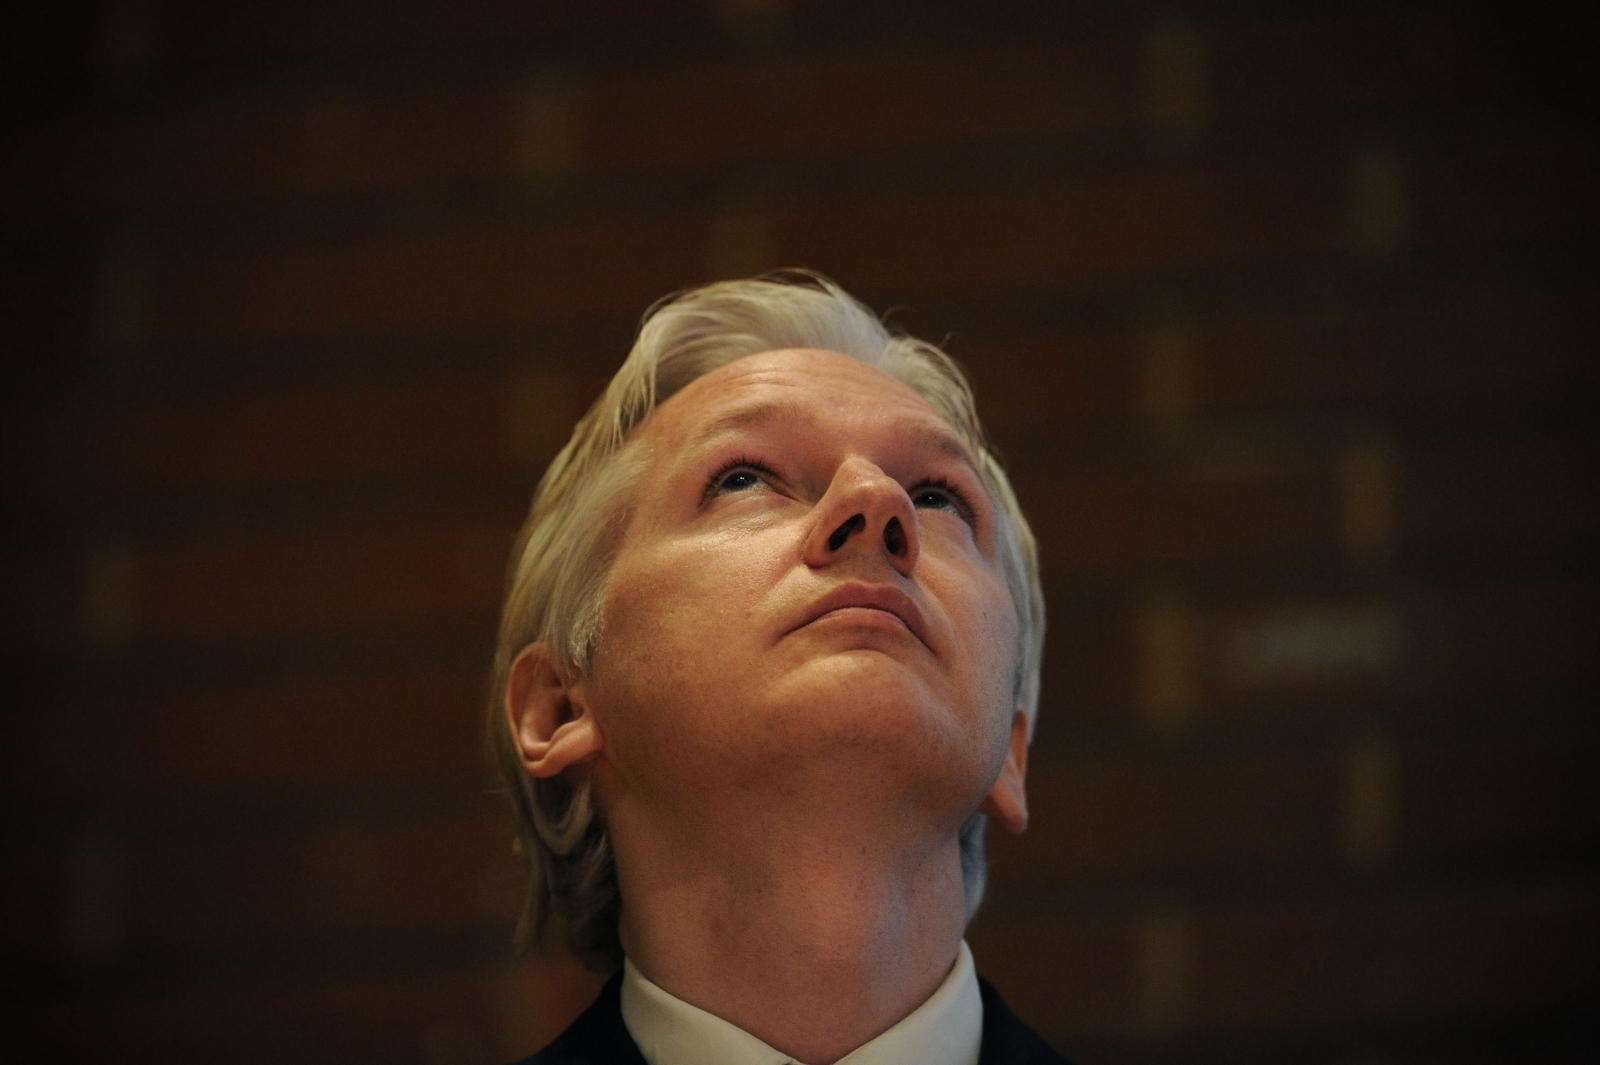 Julian Assange's stay in London embassy 'untenable' - Ecuador